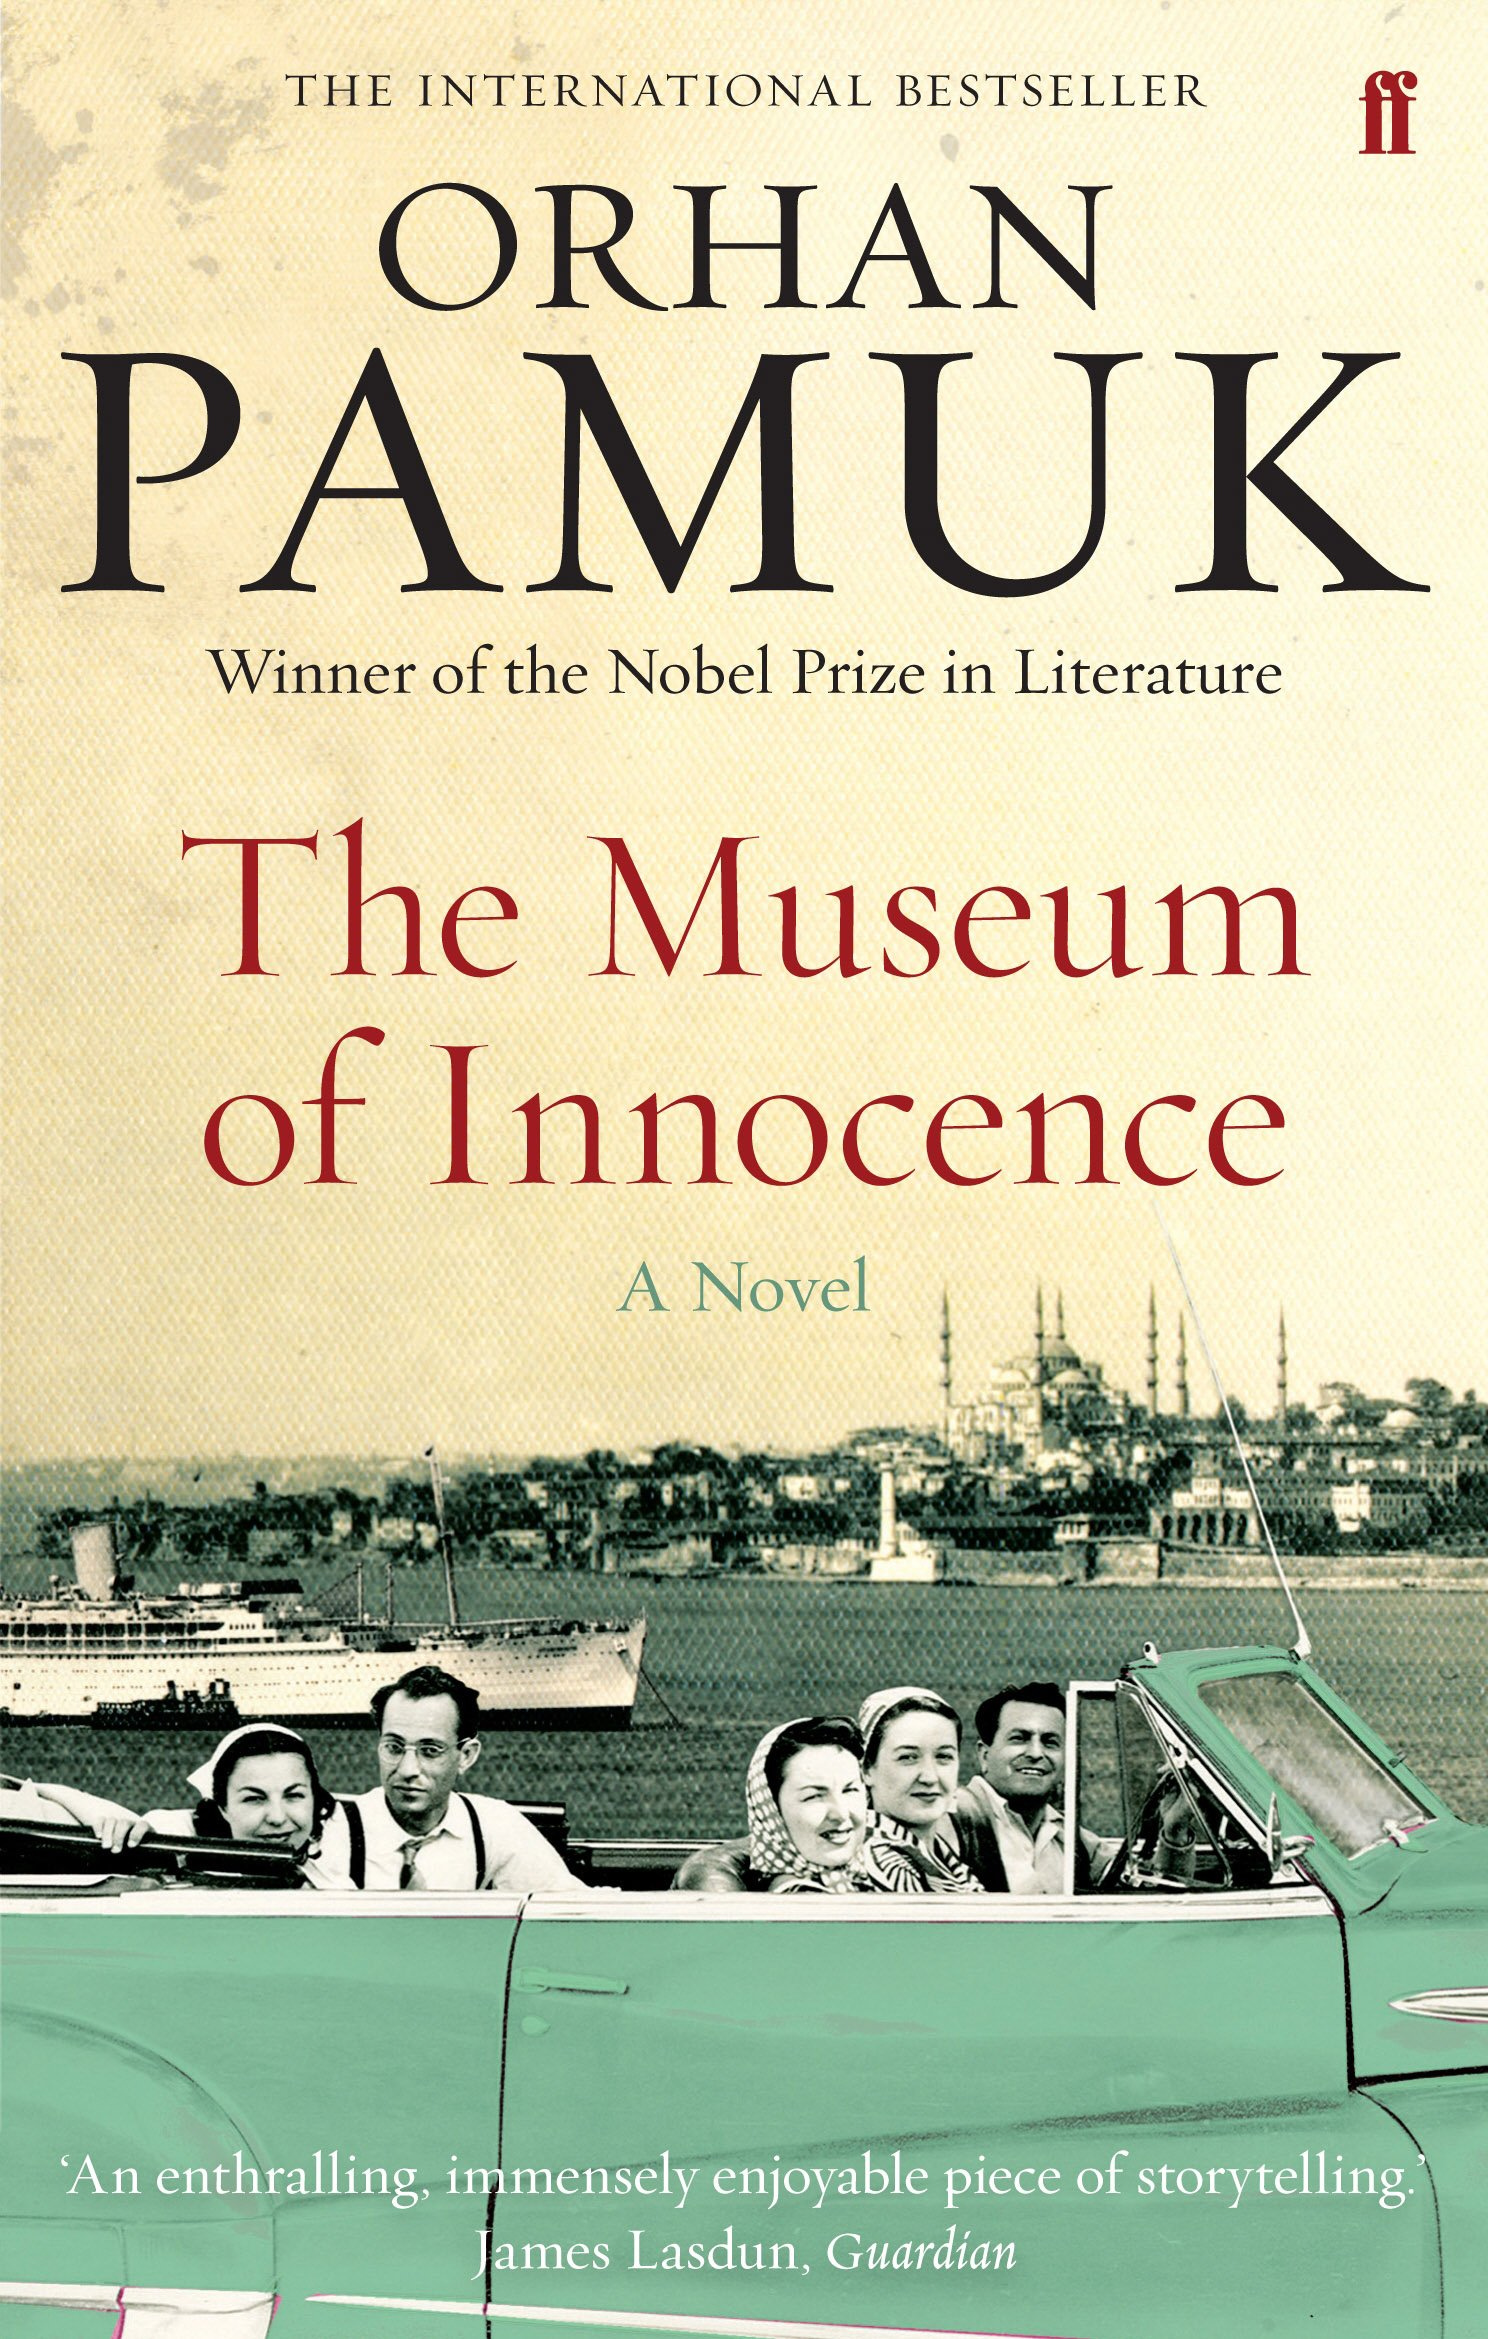 Image result for The Museum of Innocence - Orhan Pamuk